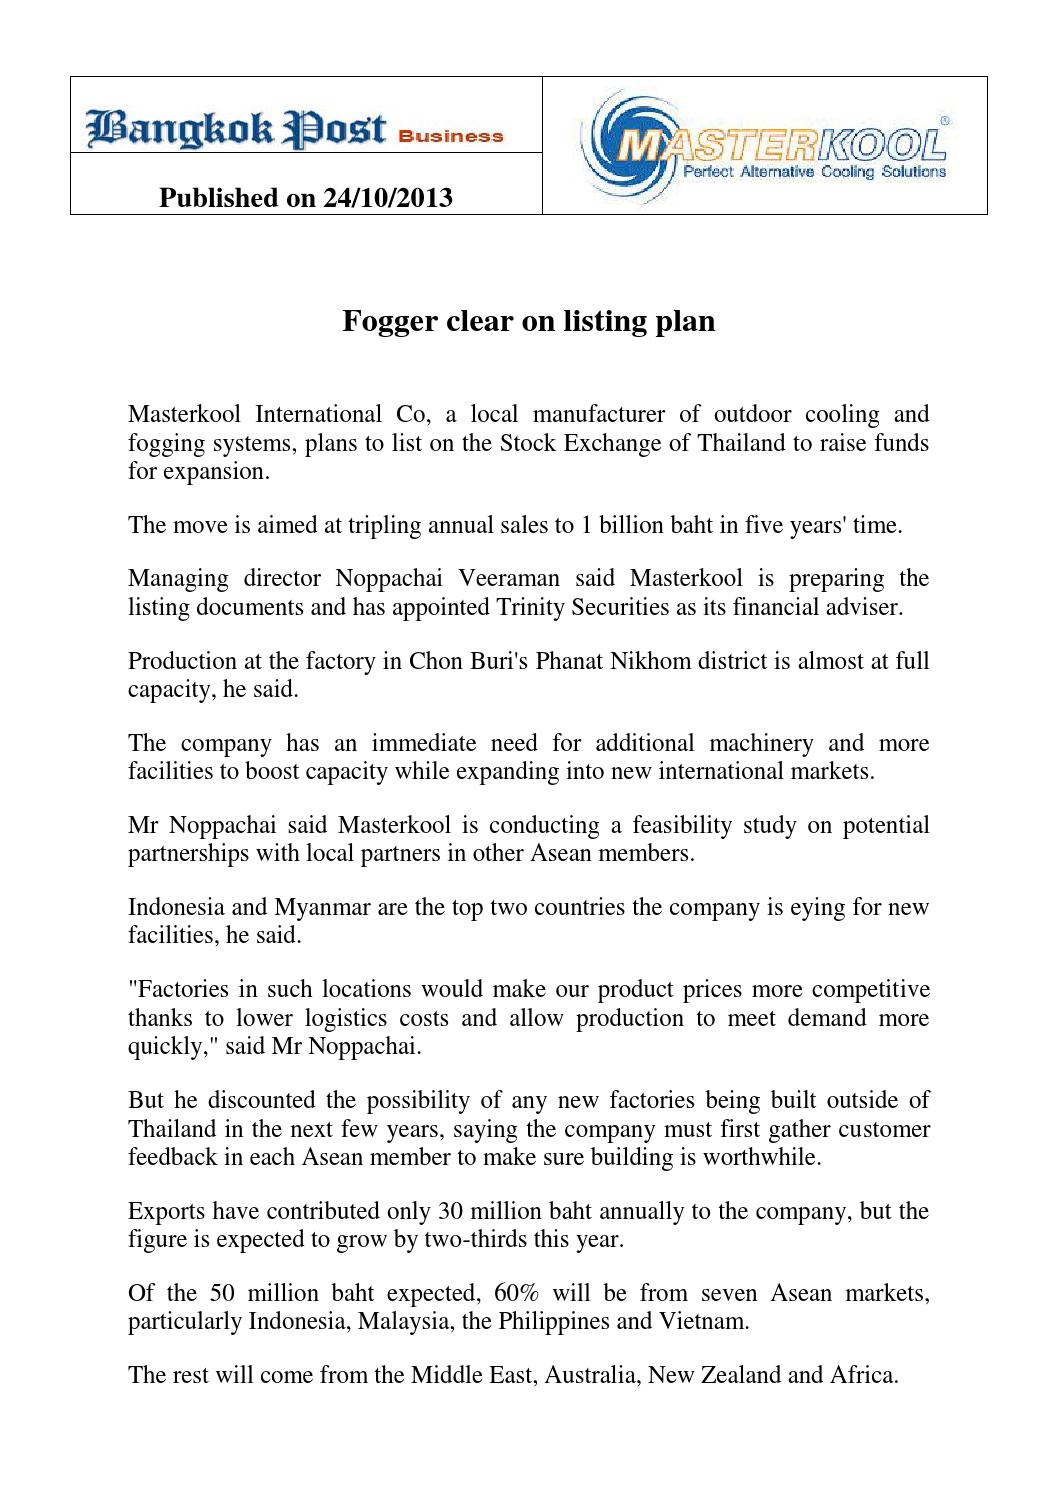 Fogger Clear on Listing Plan by MDA Consulting S E A  - issuu